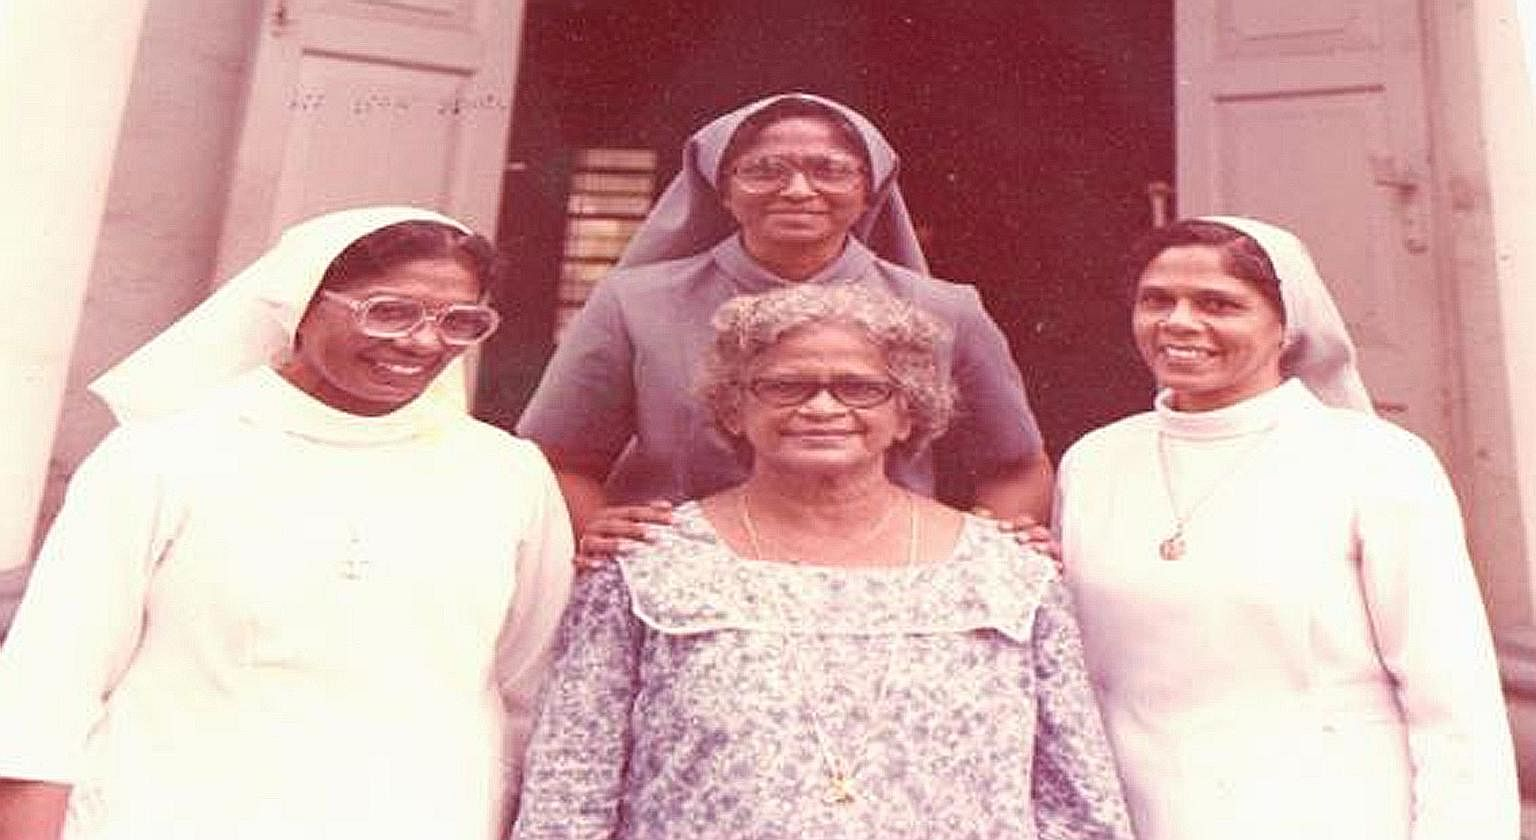 Sister Gerard (back row) with (from left) her elder sister Sadine, mother Mary Fernandez, and younger sister Victorine in the mid 1980s. Her sisters are Franciscan nuns.